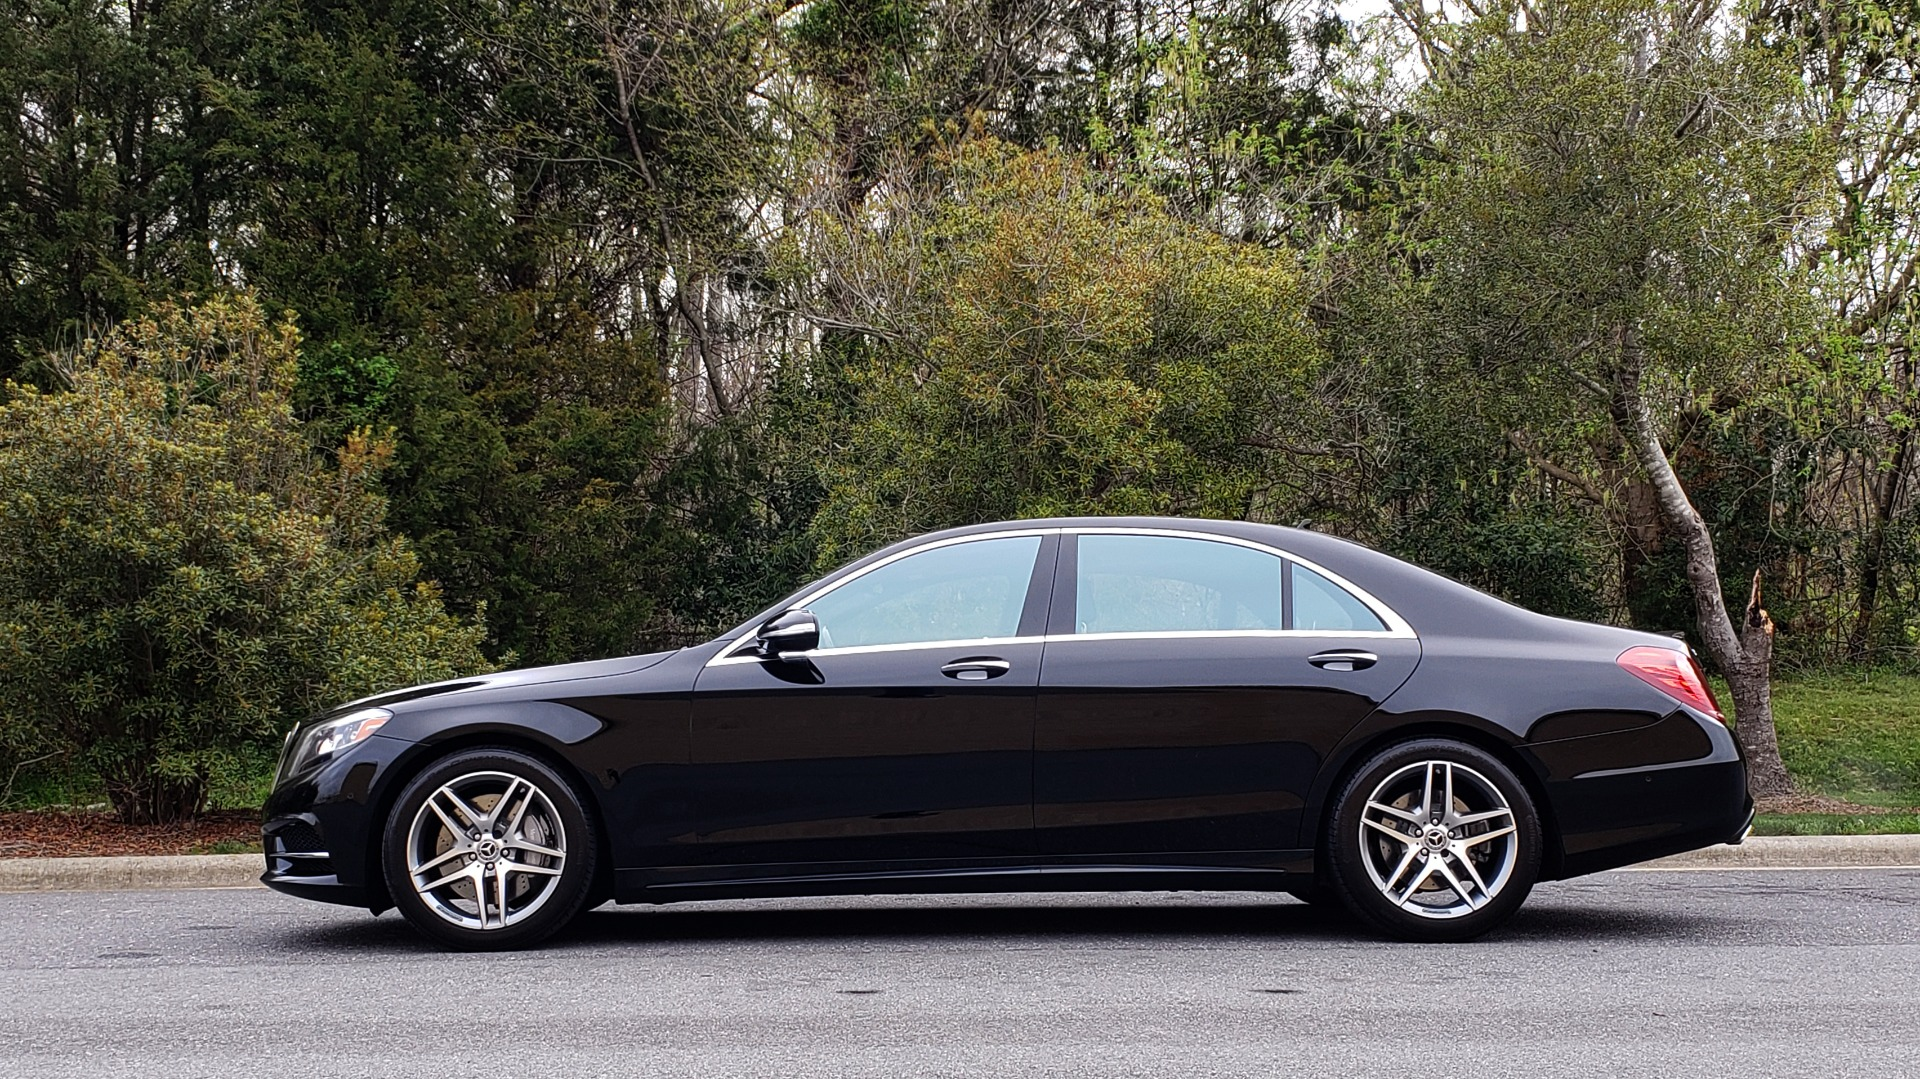 Used 2017 Mercedes-Benz S-CLASS S 550 4MATIC SPORT / PREM PKG / WARMTH & COMFORT / KEYLESS-GO for sale Sold at Formula Imports in Charlotte NC 28227 2